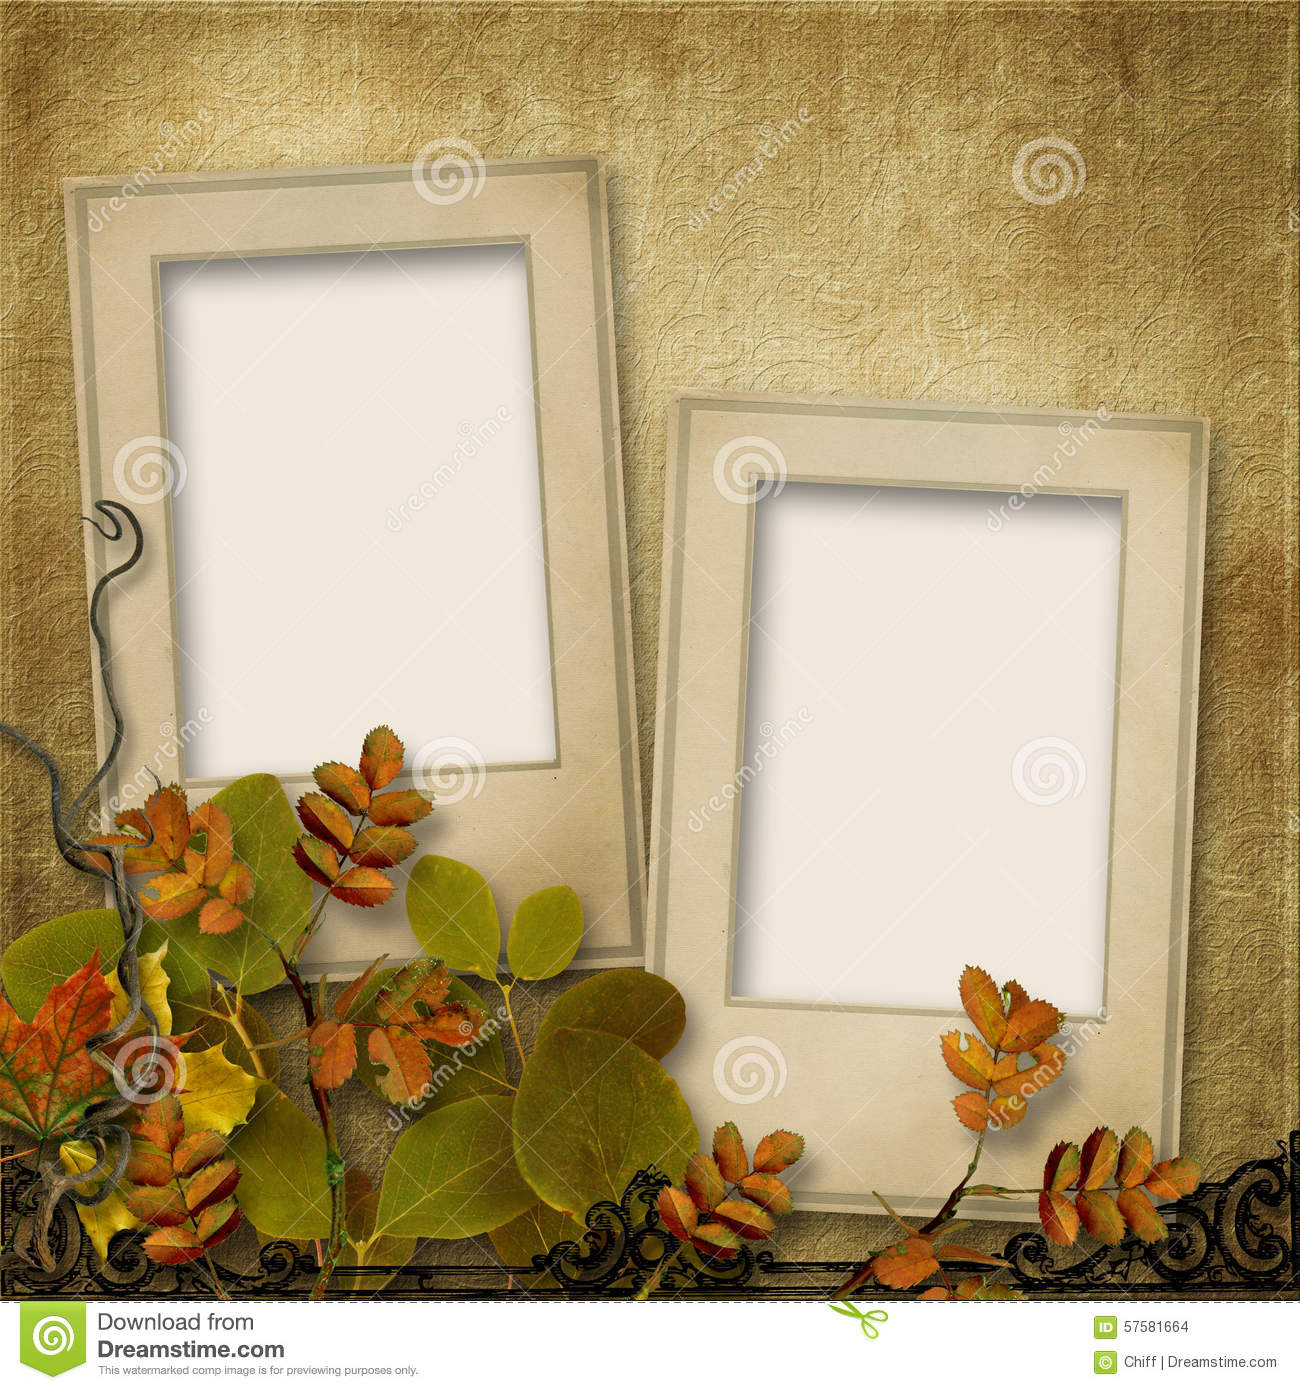 Vintage background with frame for photo and autumn leaves stock photo image of fall beautiful - Marco de fotos multiple ...